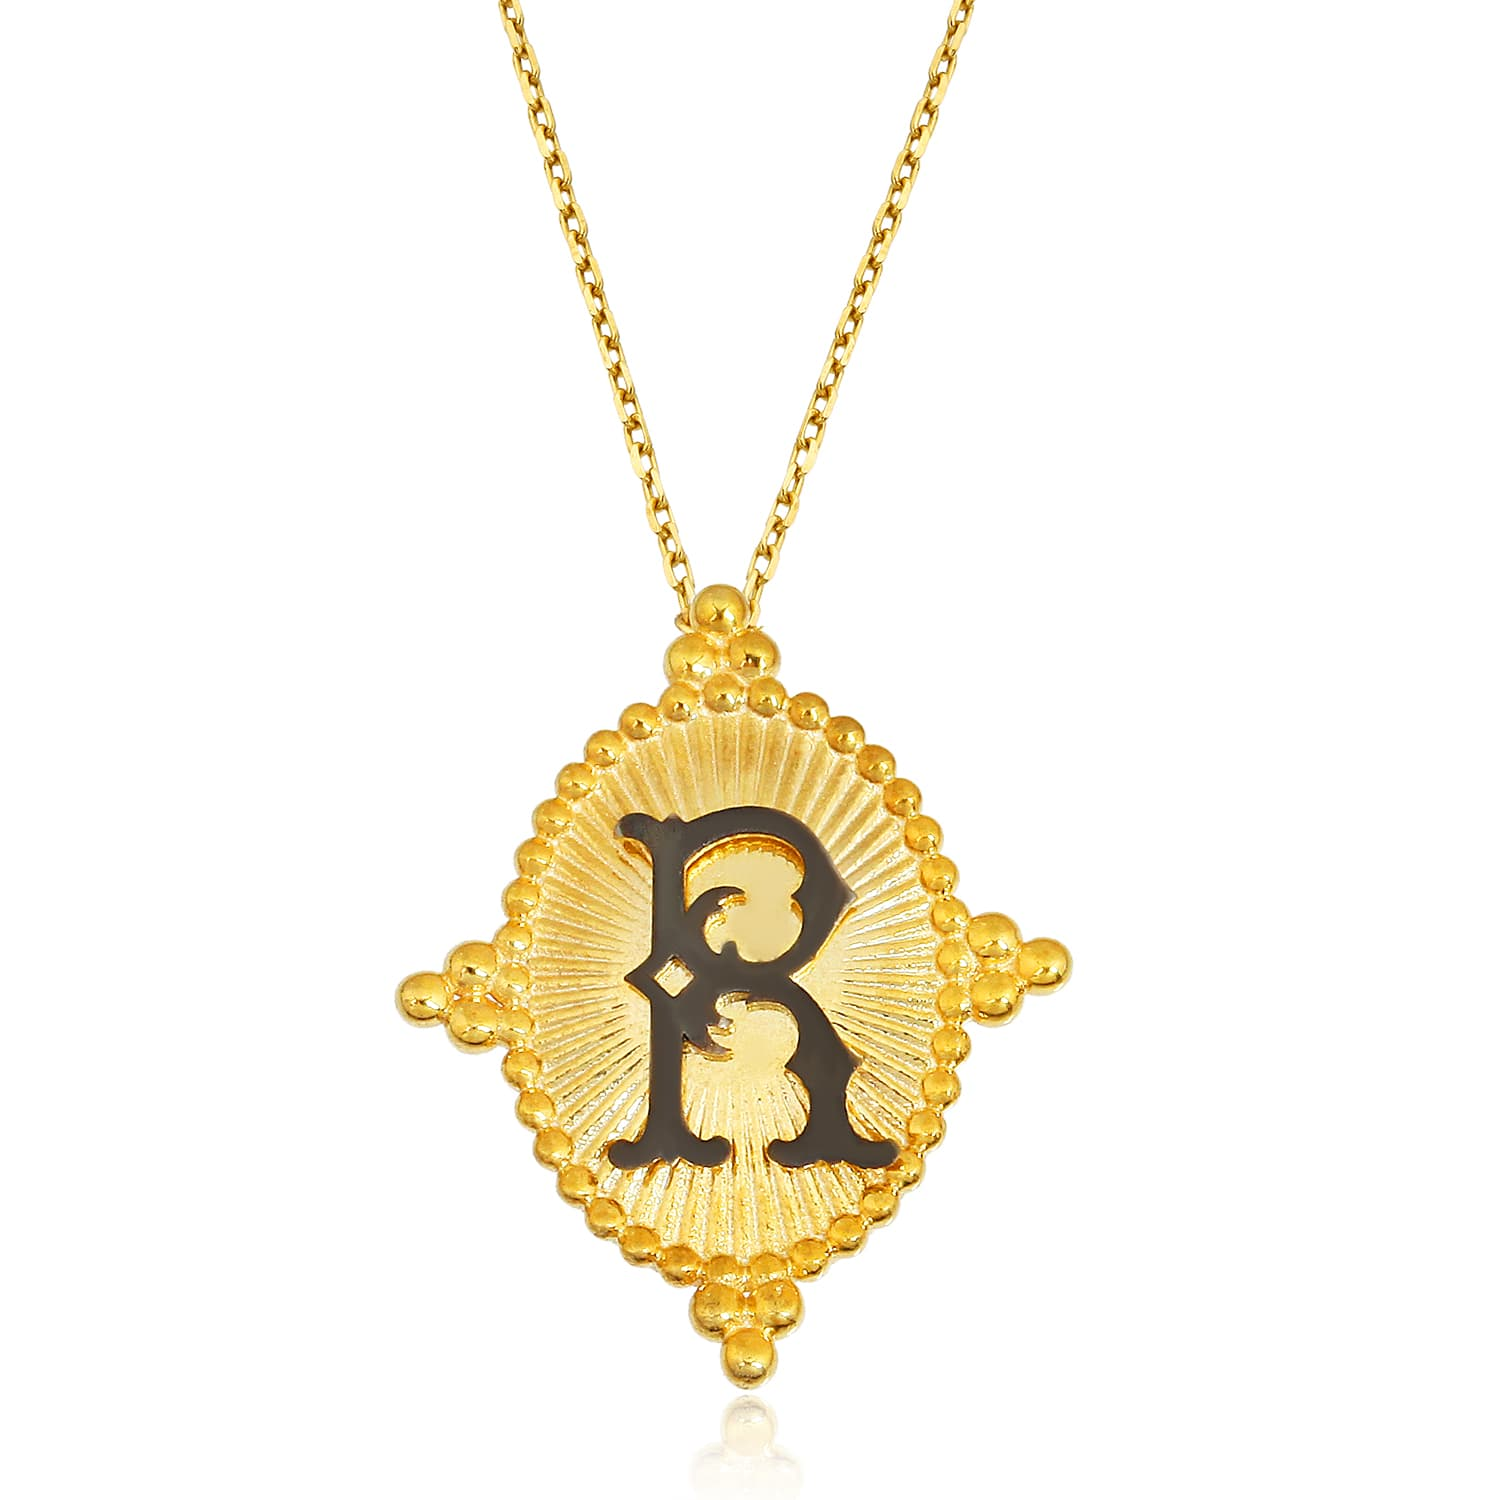 LETTER R VINTAGE NECKLACE